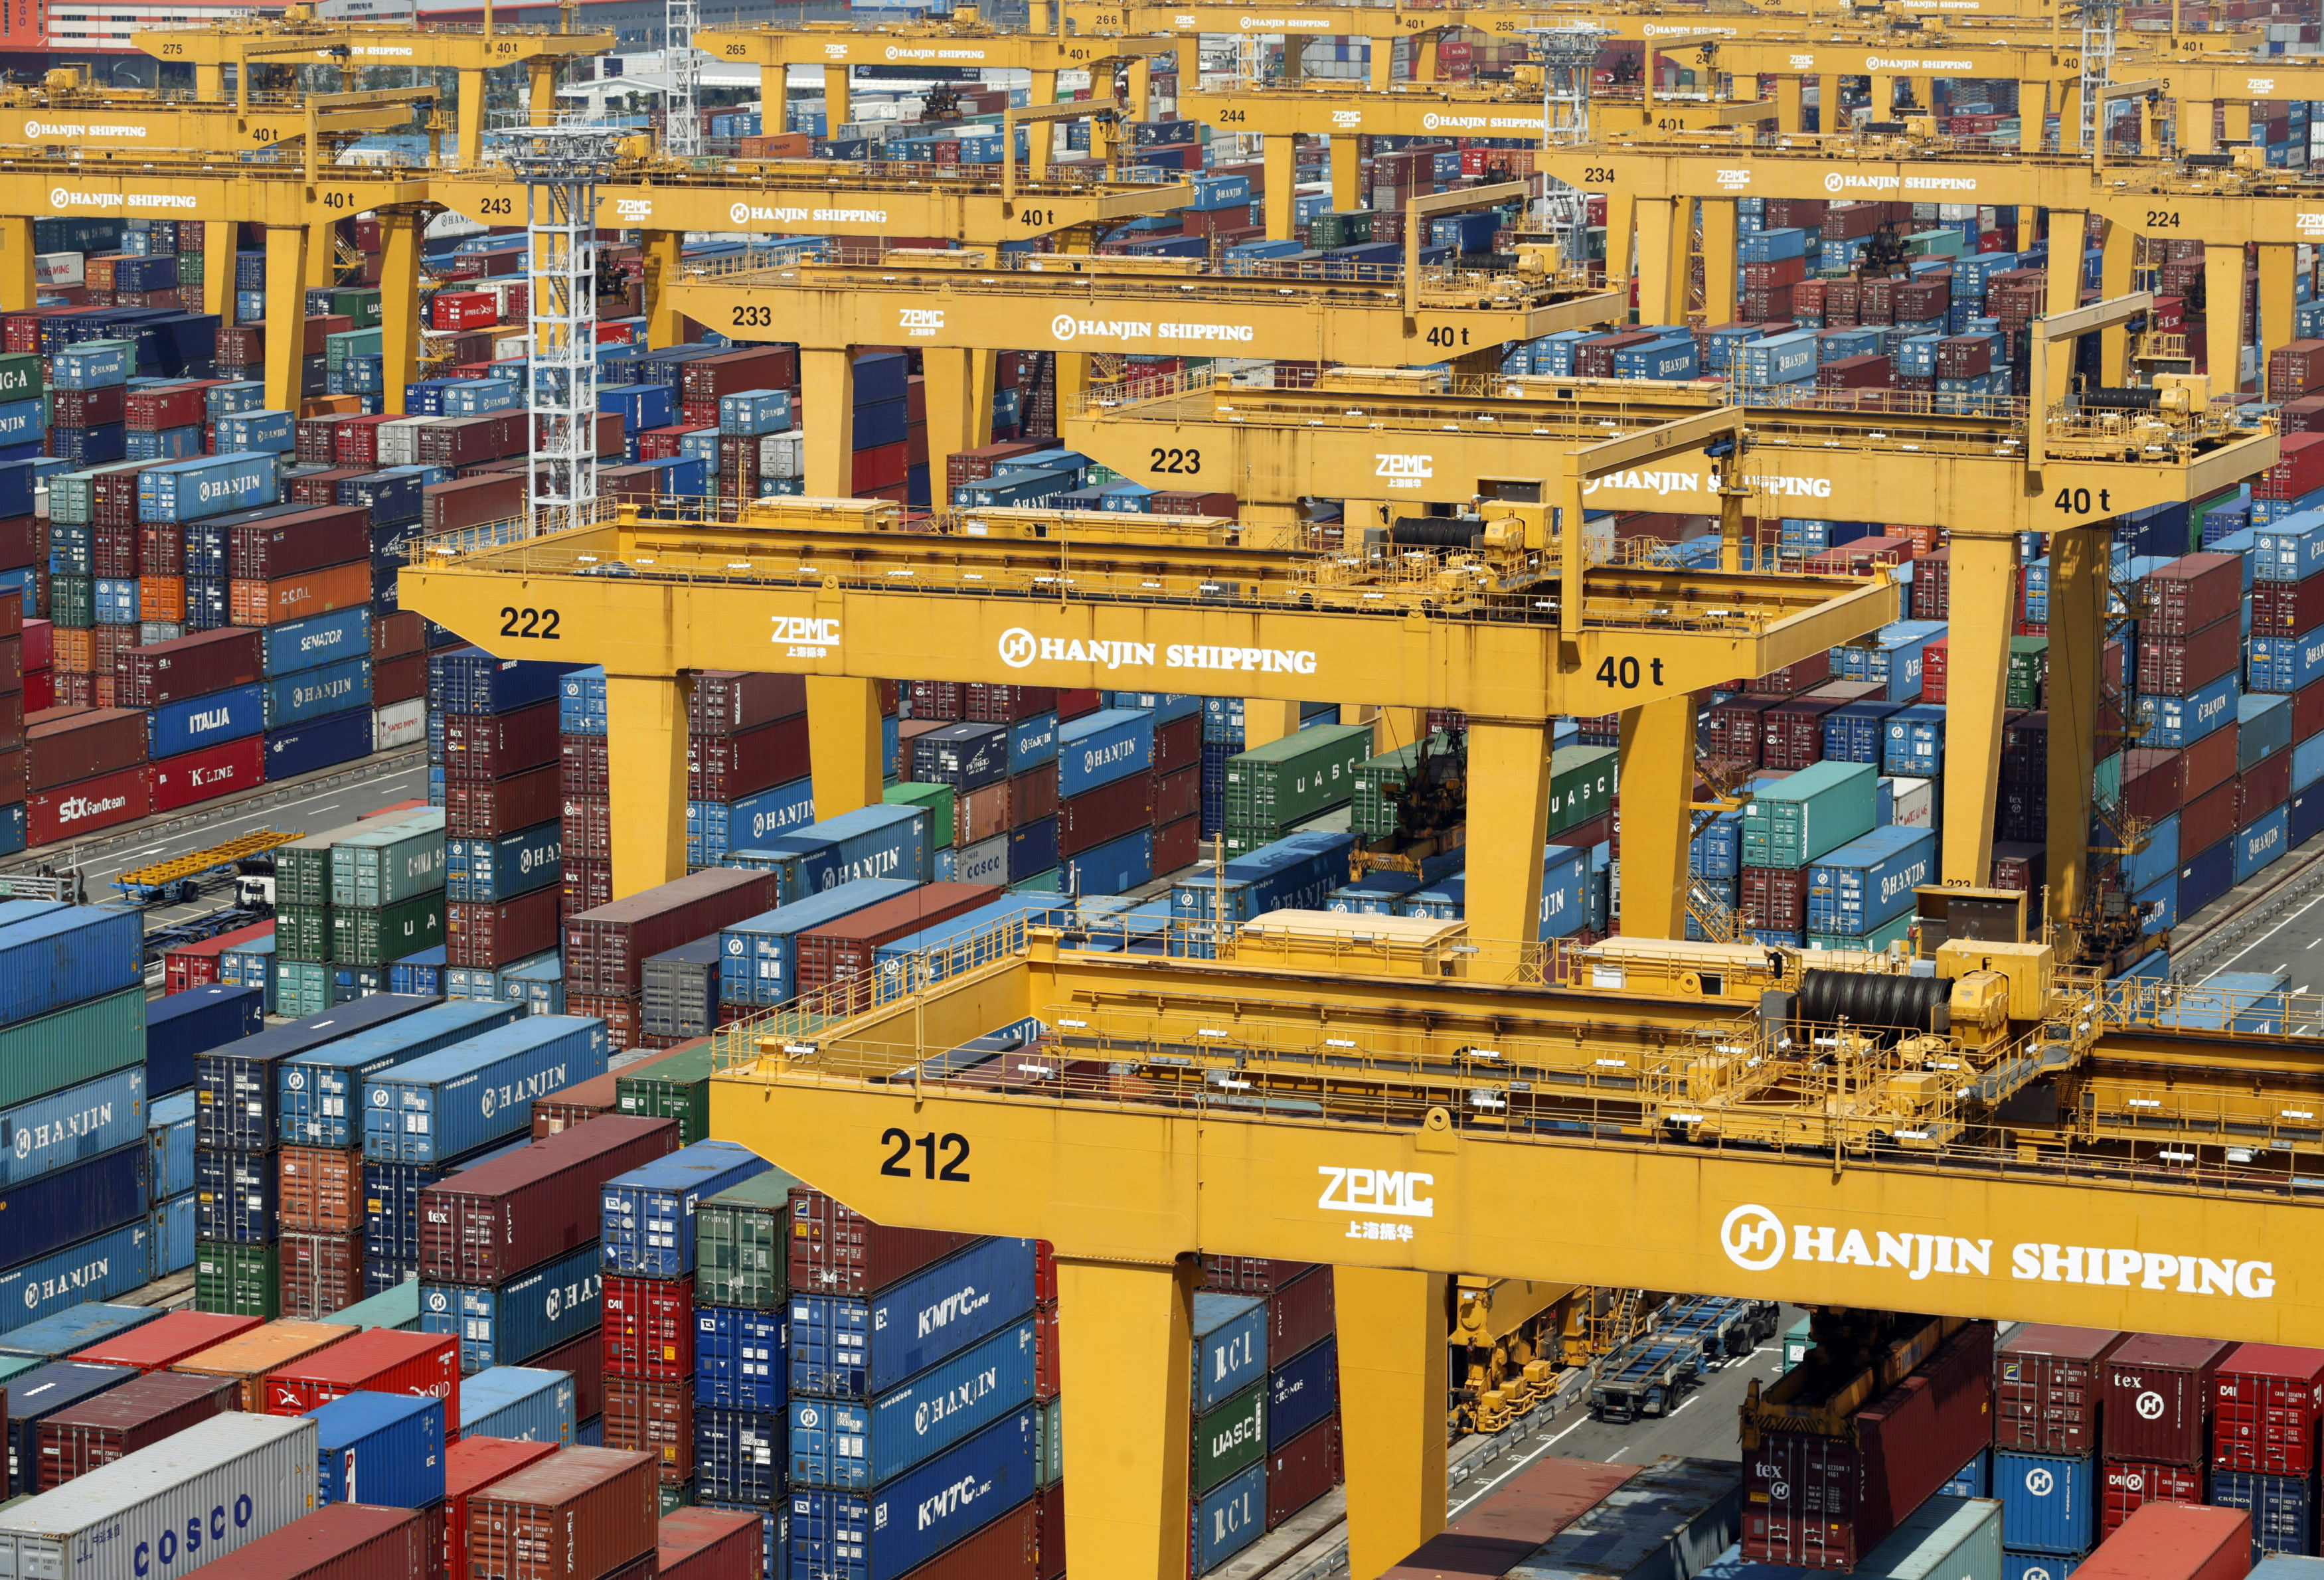 Hanjin Shipping's container terminal is seen at the Busan New Port in Busan, about 420 km (261 miles) southeast of Seoul, August 8, 2013. REUTERS/Lee Jae-Won